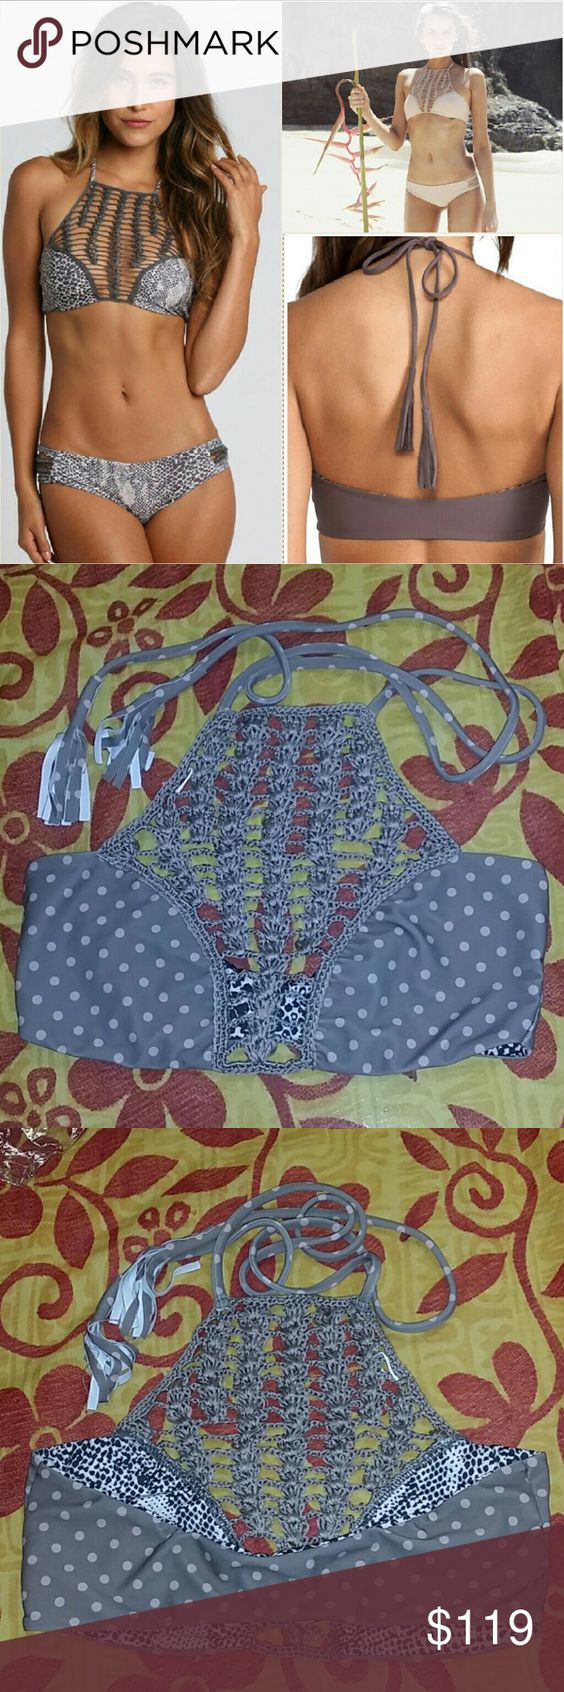 New acacia puka panama crochet bikini top swimwear Brand new without tag & still in original manufacturer's plastic. Panama crochet bikini top in puka brown polka dot print by acacia swimwear. Petiti XS. Rare piece in this pattern. From the 2015 Tauhani collection. Cut the tag but never wore it. No trade please. The price is firm. Price reflects high percentage posh commission fees acacia swimwear Swim Bikinis